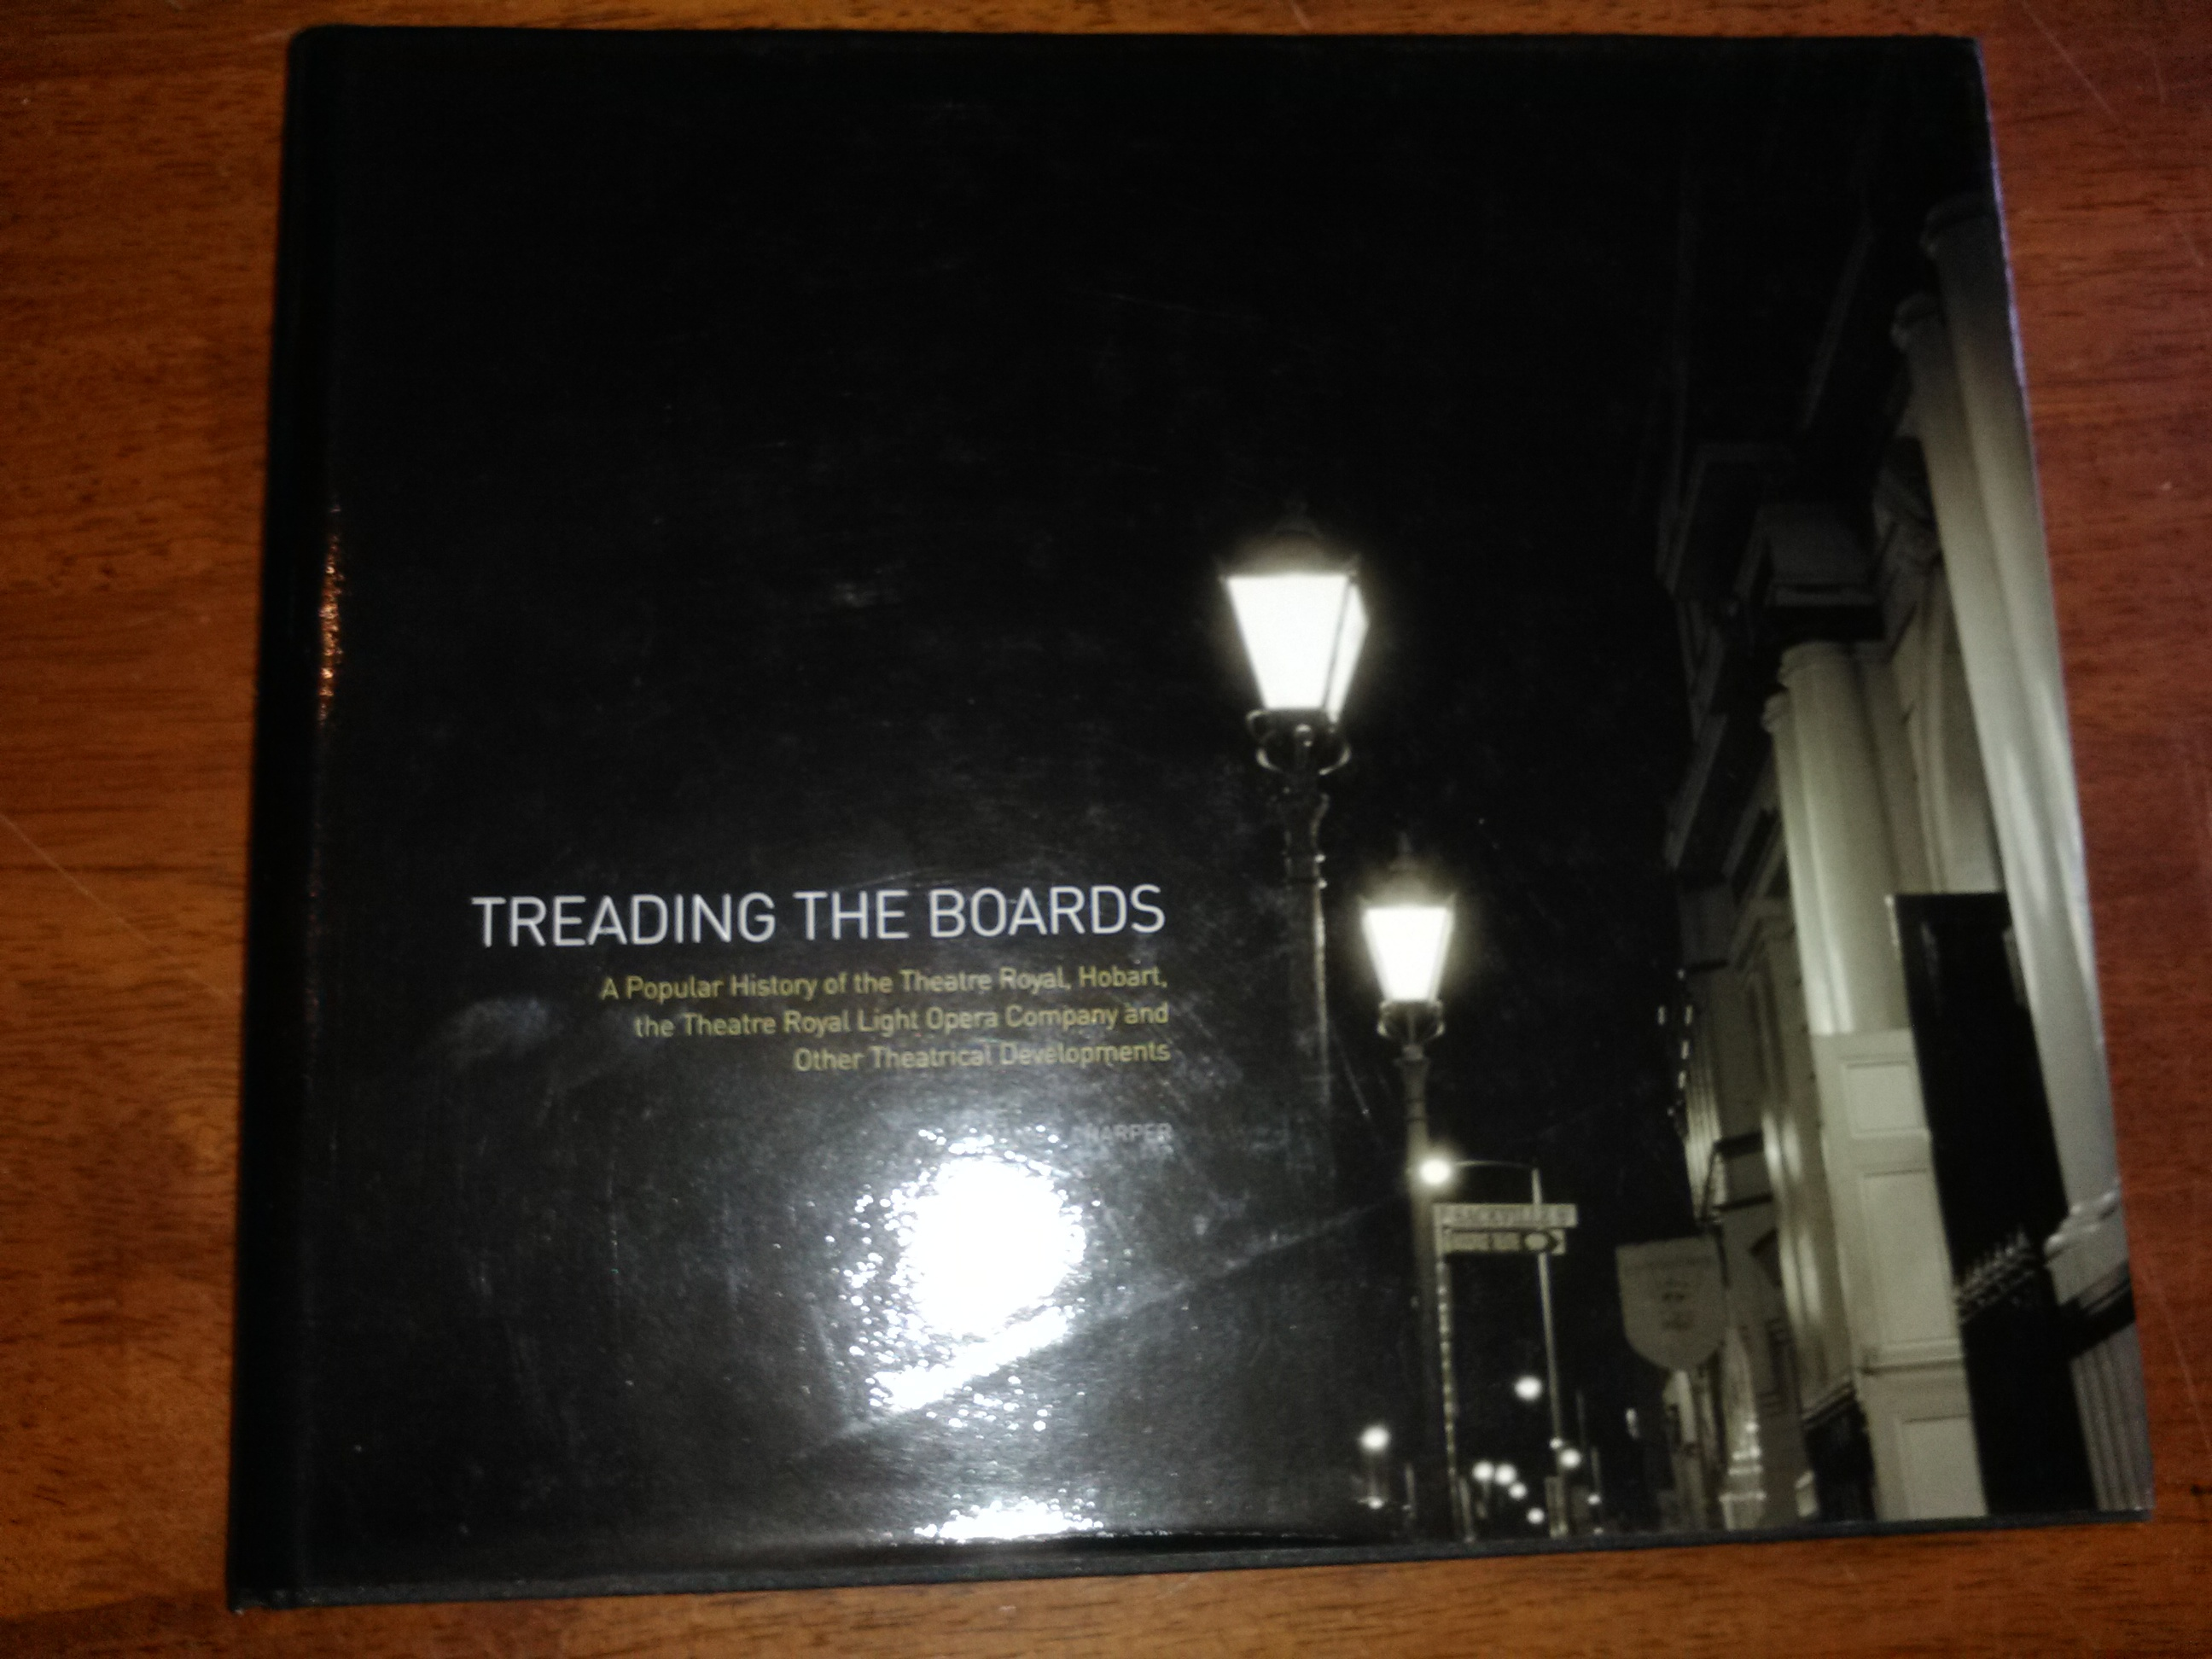 Treading the Boards - hardcover